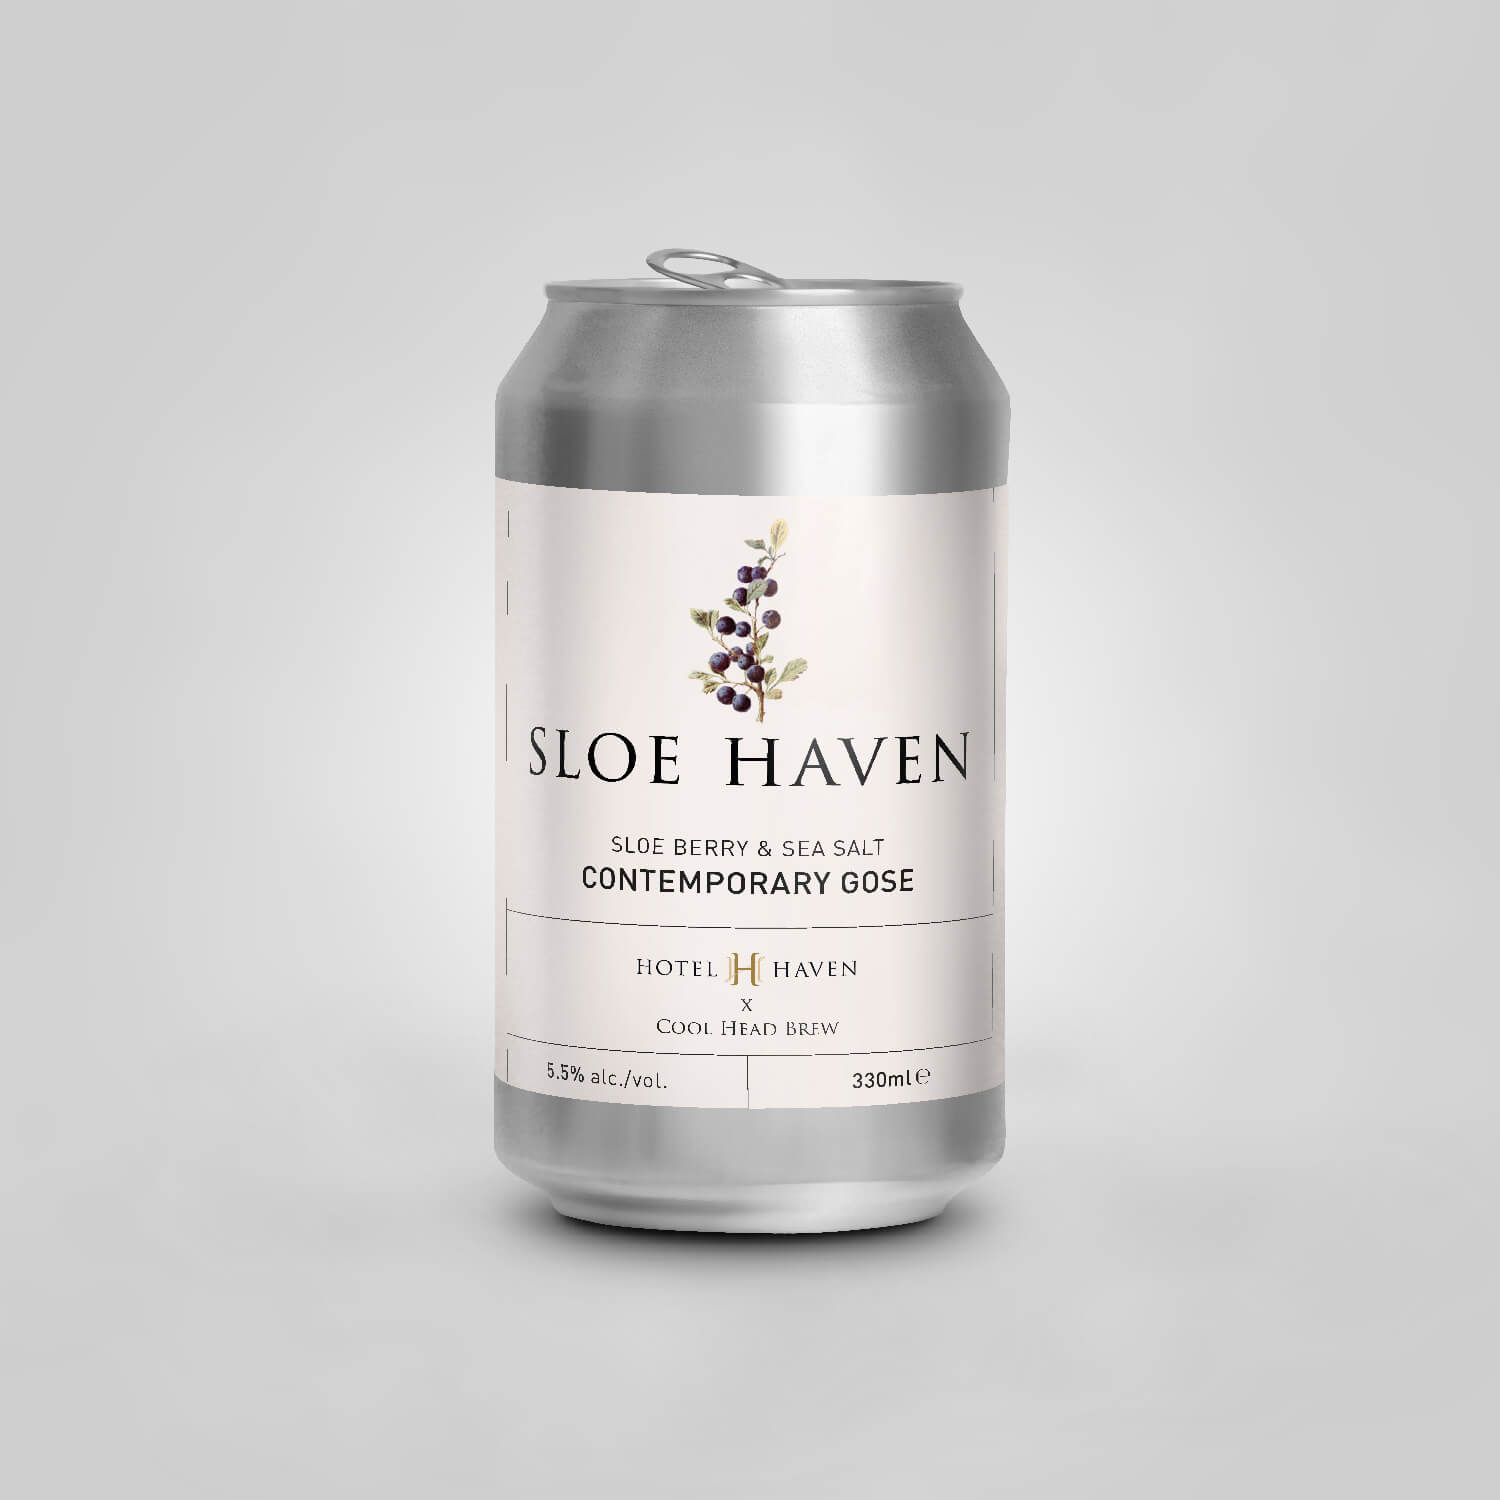 Sloe Haven beer label